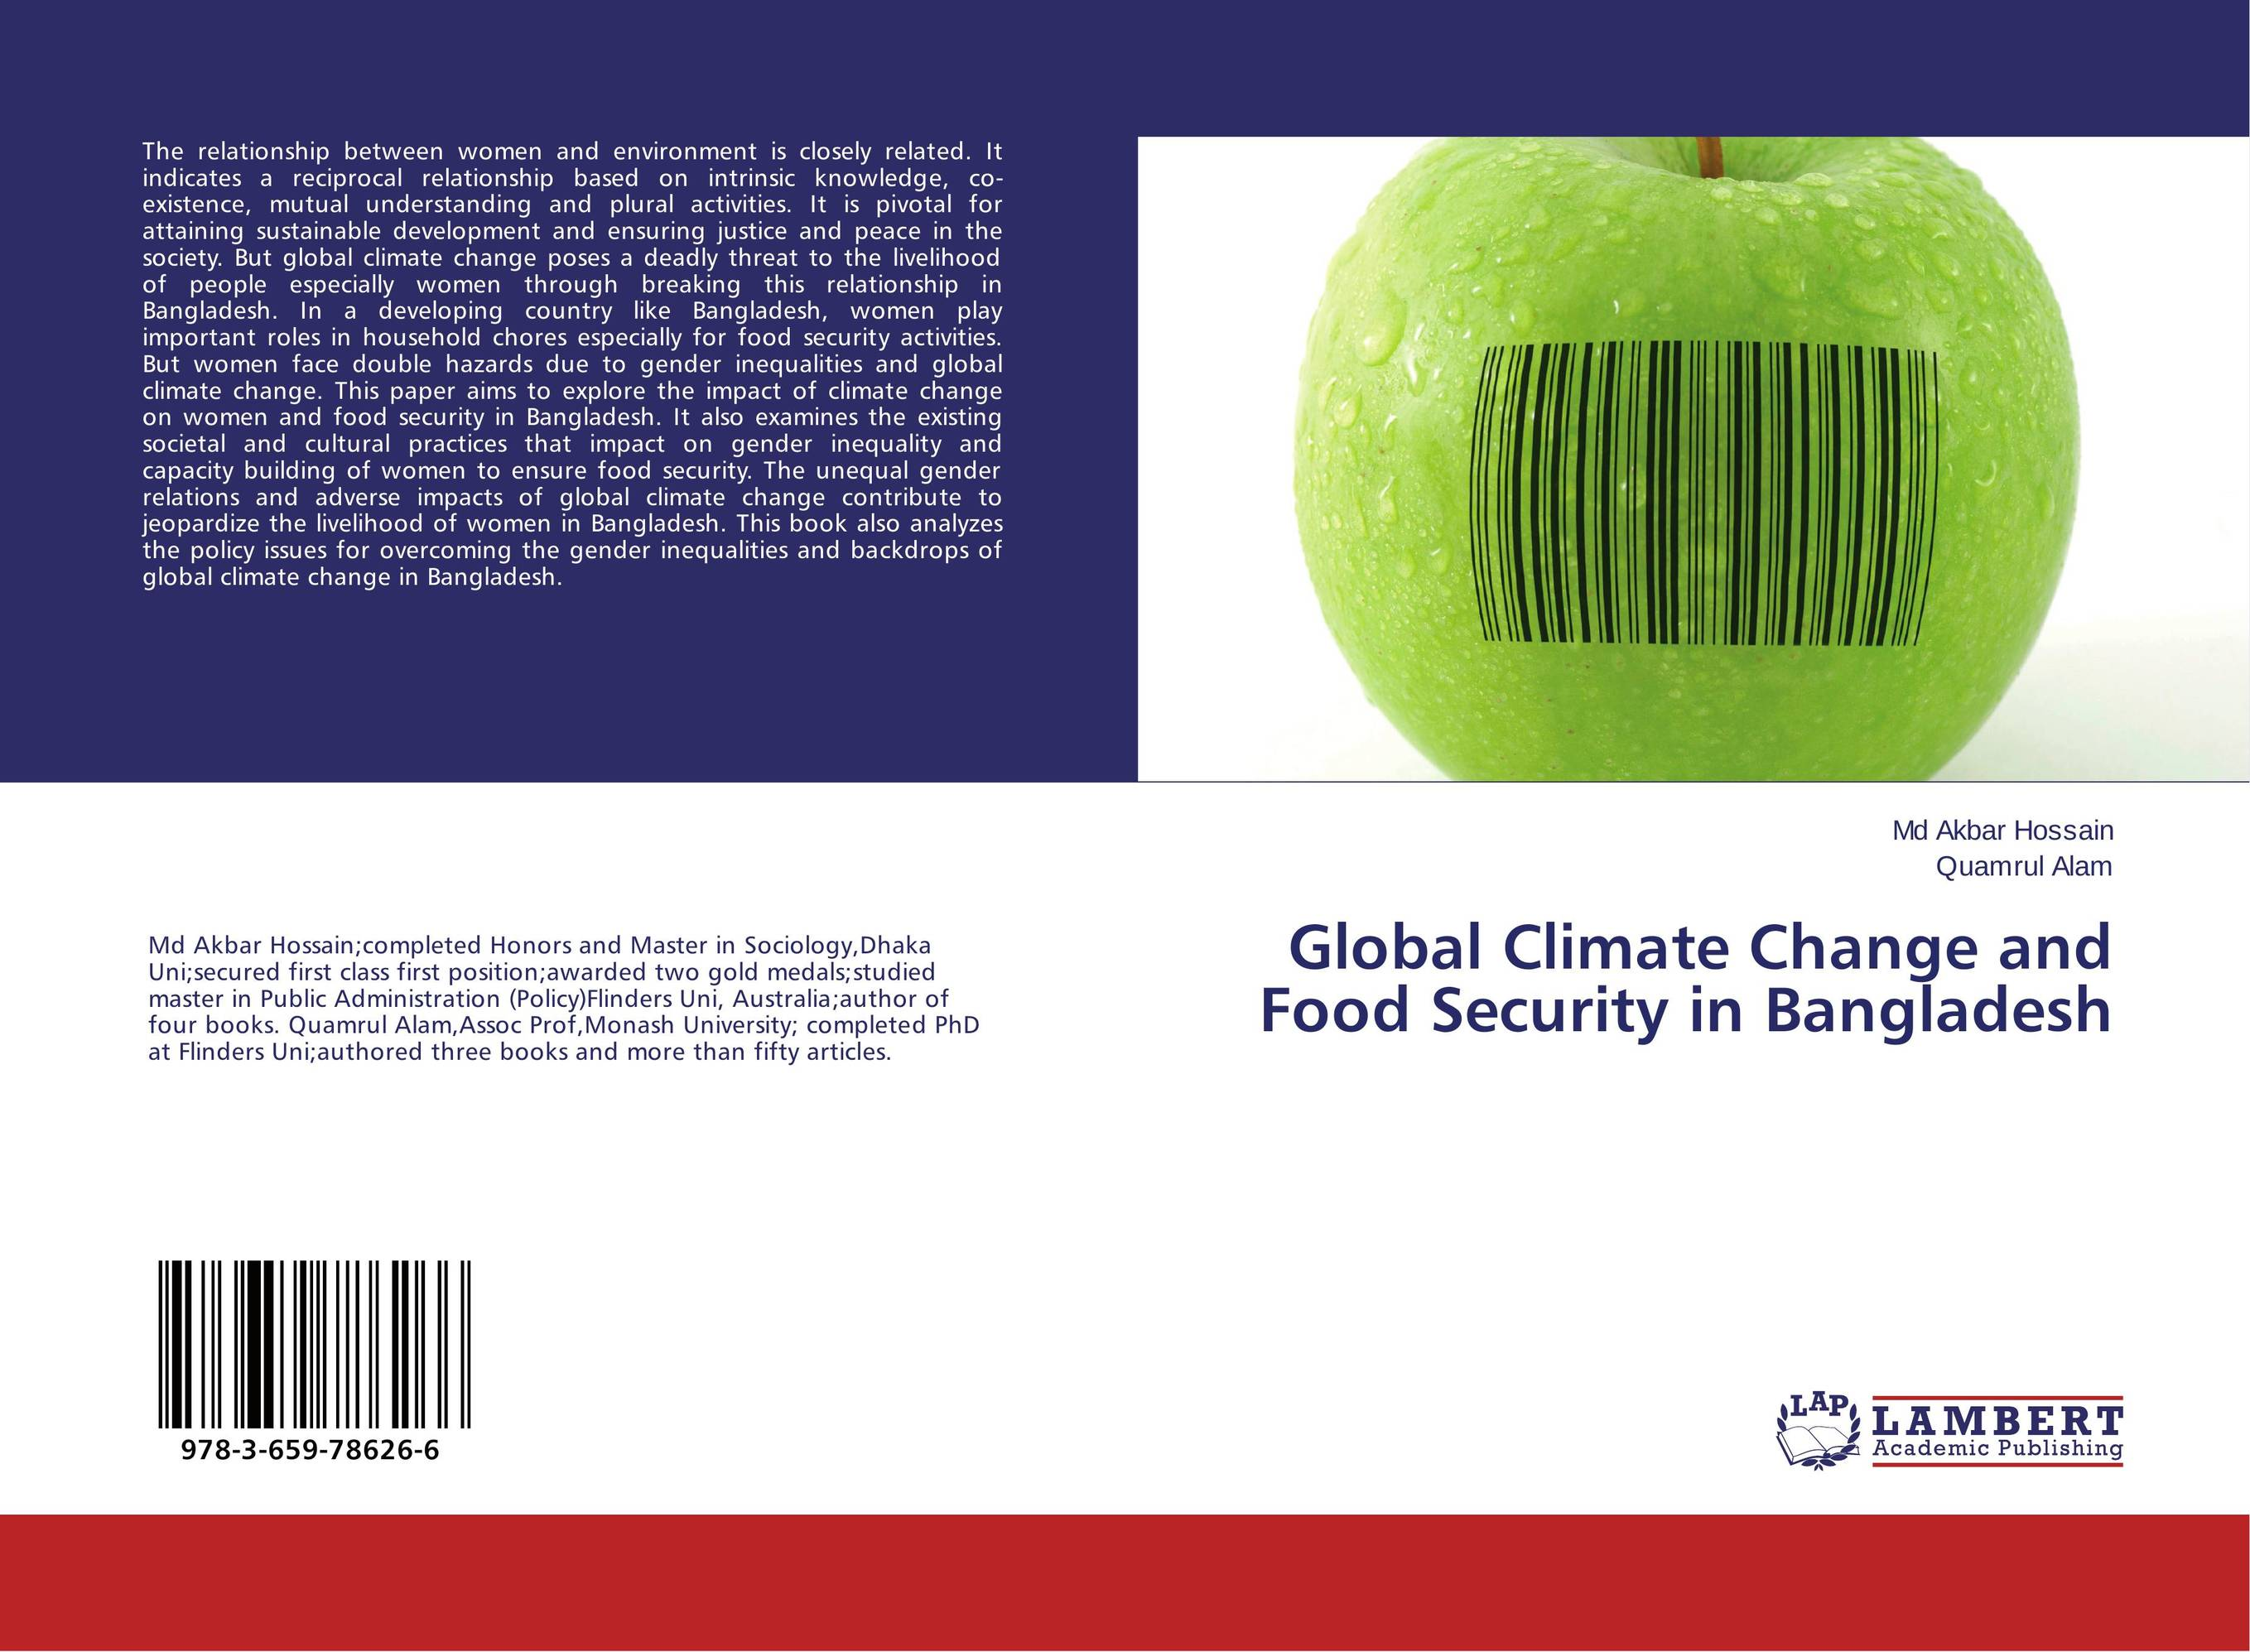 Global Climate Change and Food Security in Bangladesh breastfeeding knowledge in dhaka bangladesh